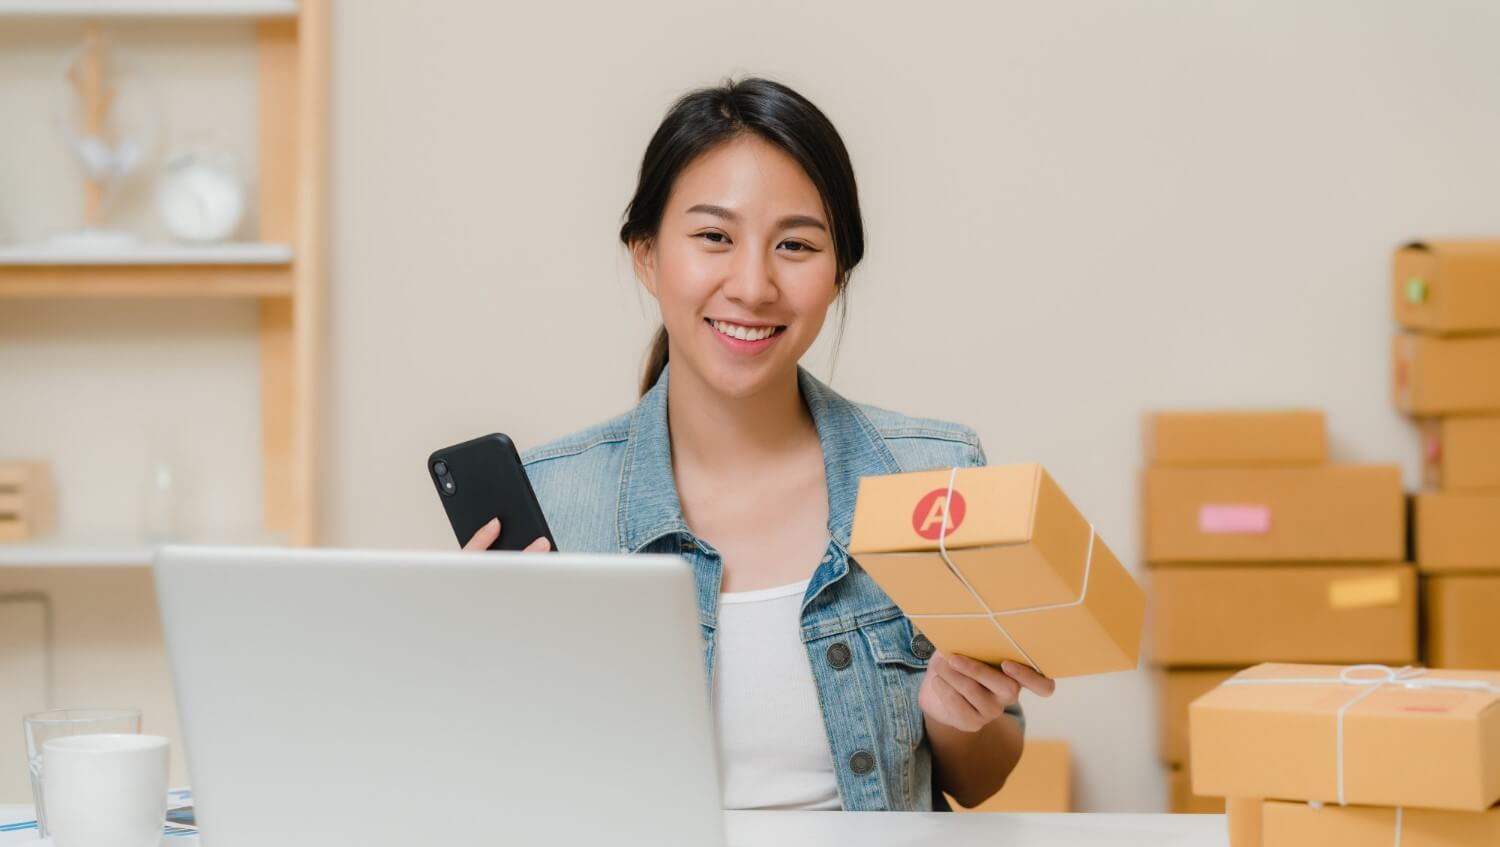 AliExpress UAE: Your go-to store for essential & affordable products<div><span style='color:#a0a0a0;font-size:16px;text-transform:none;line-height:1.1'>Find with us the best deals and offers for AliExpress UAE. Check out our top picks.</span></div>